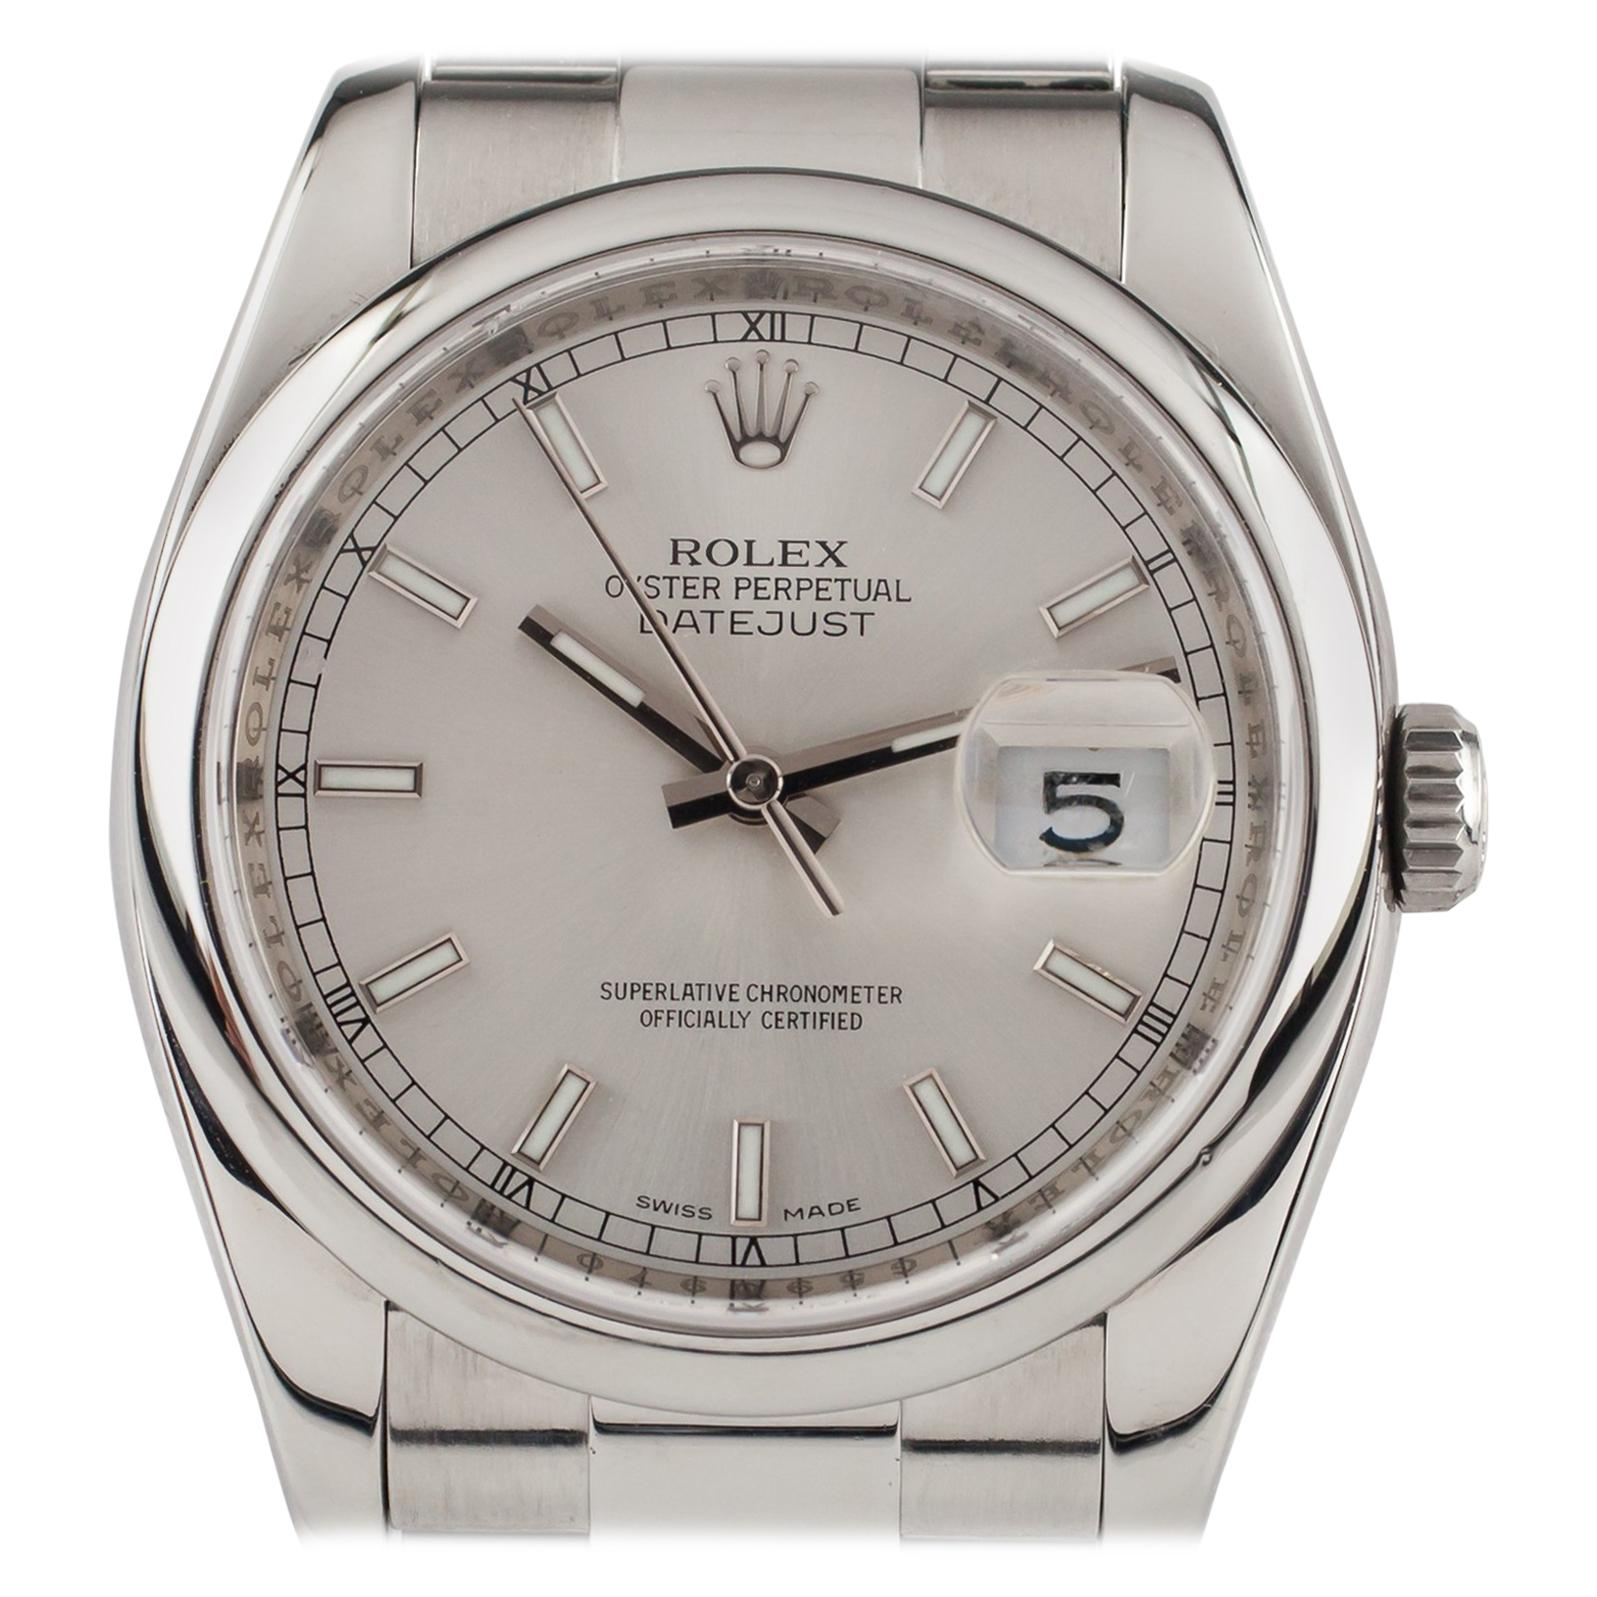 Rolex Stainless Steel Oyster Perpetual Datejust 116200 Men's Automatic Watch